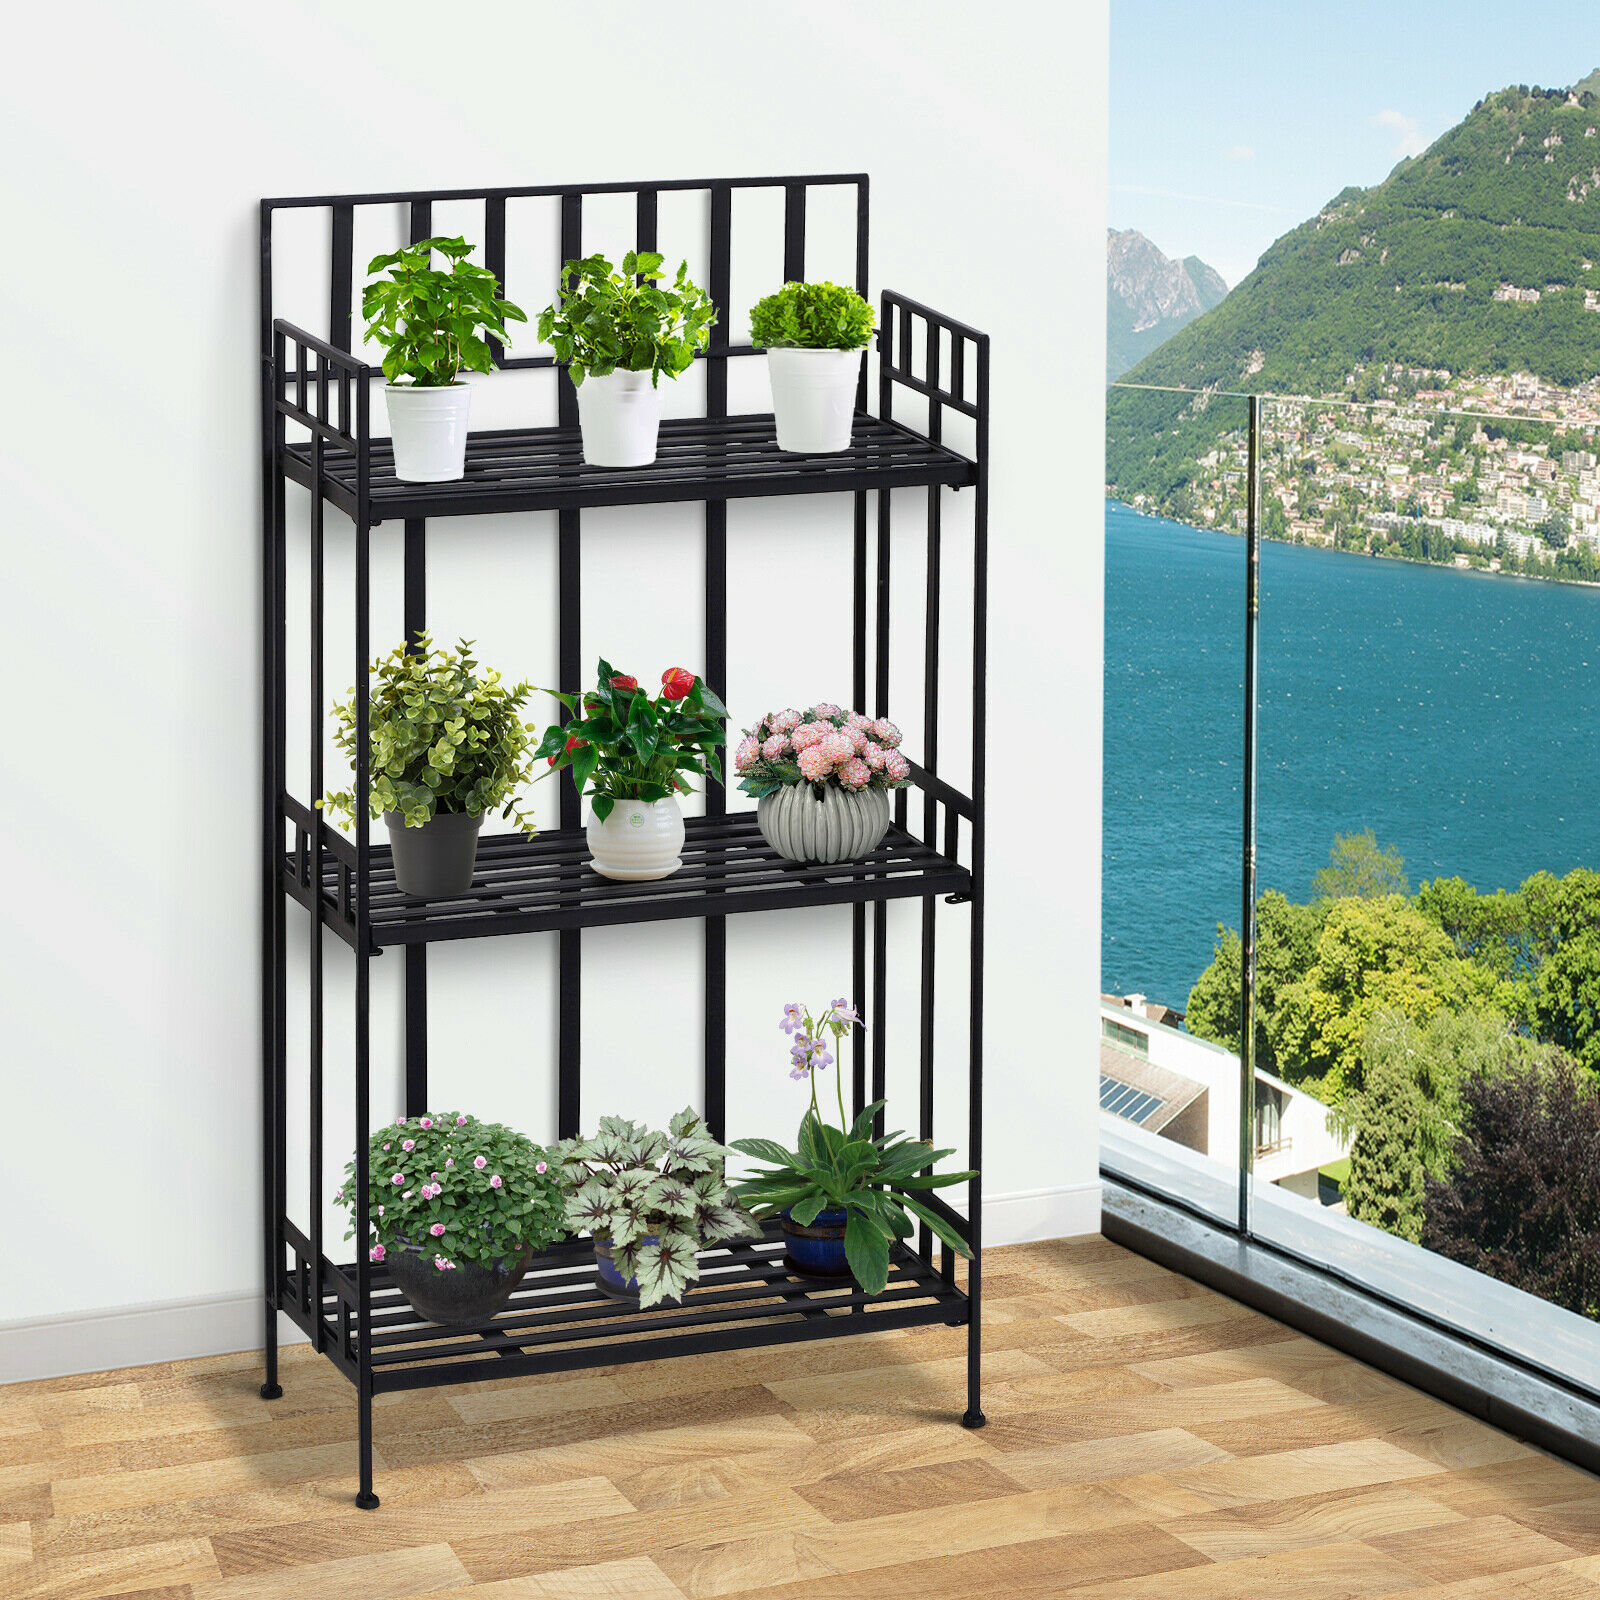 Outsunny Portable Retro 3 Tier Garden Plant Stand Metal Flower Display Rack For Sale Online Ebay